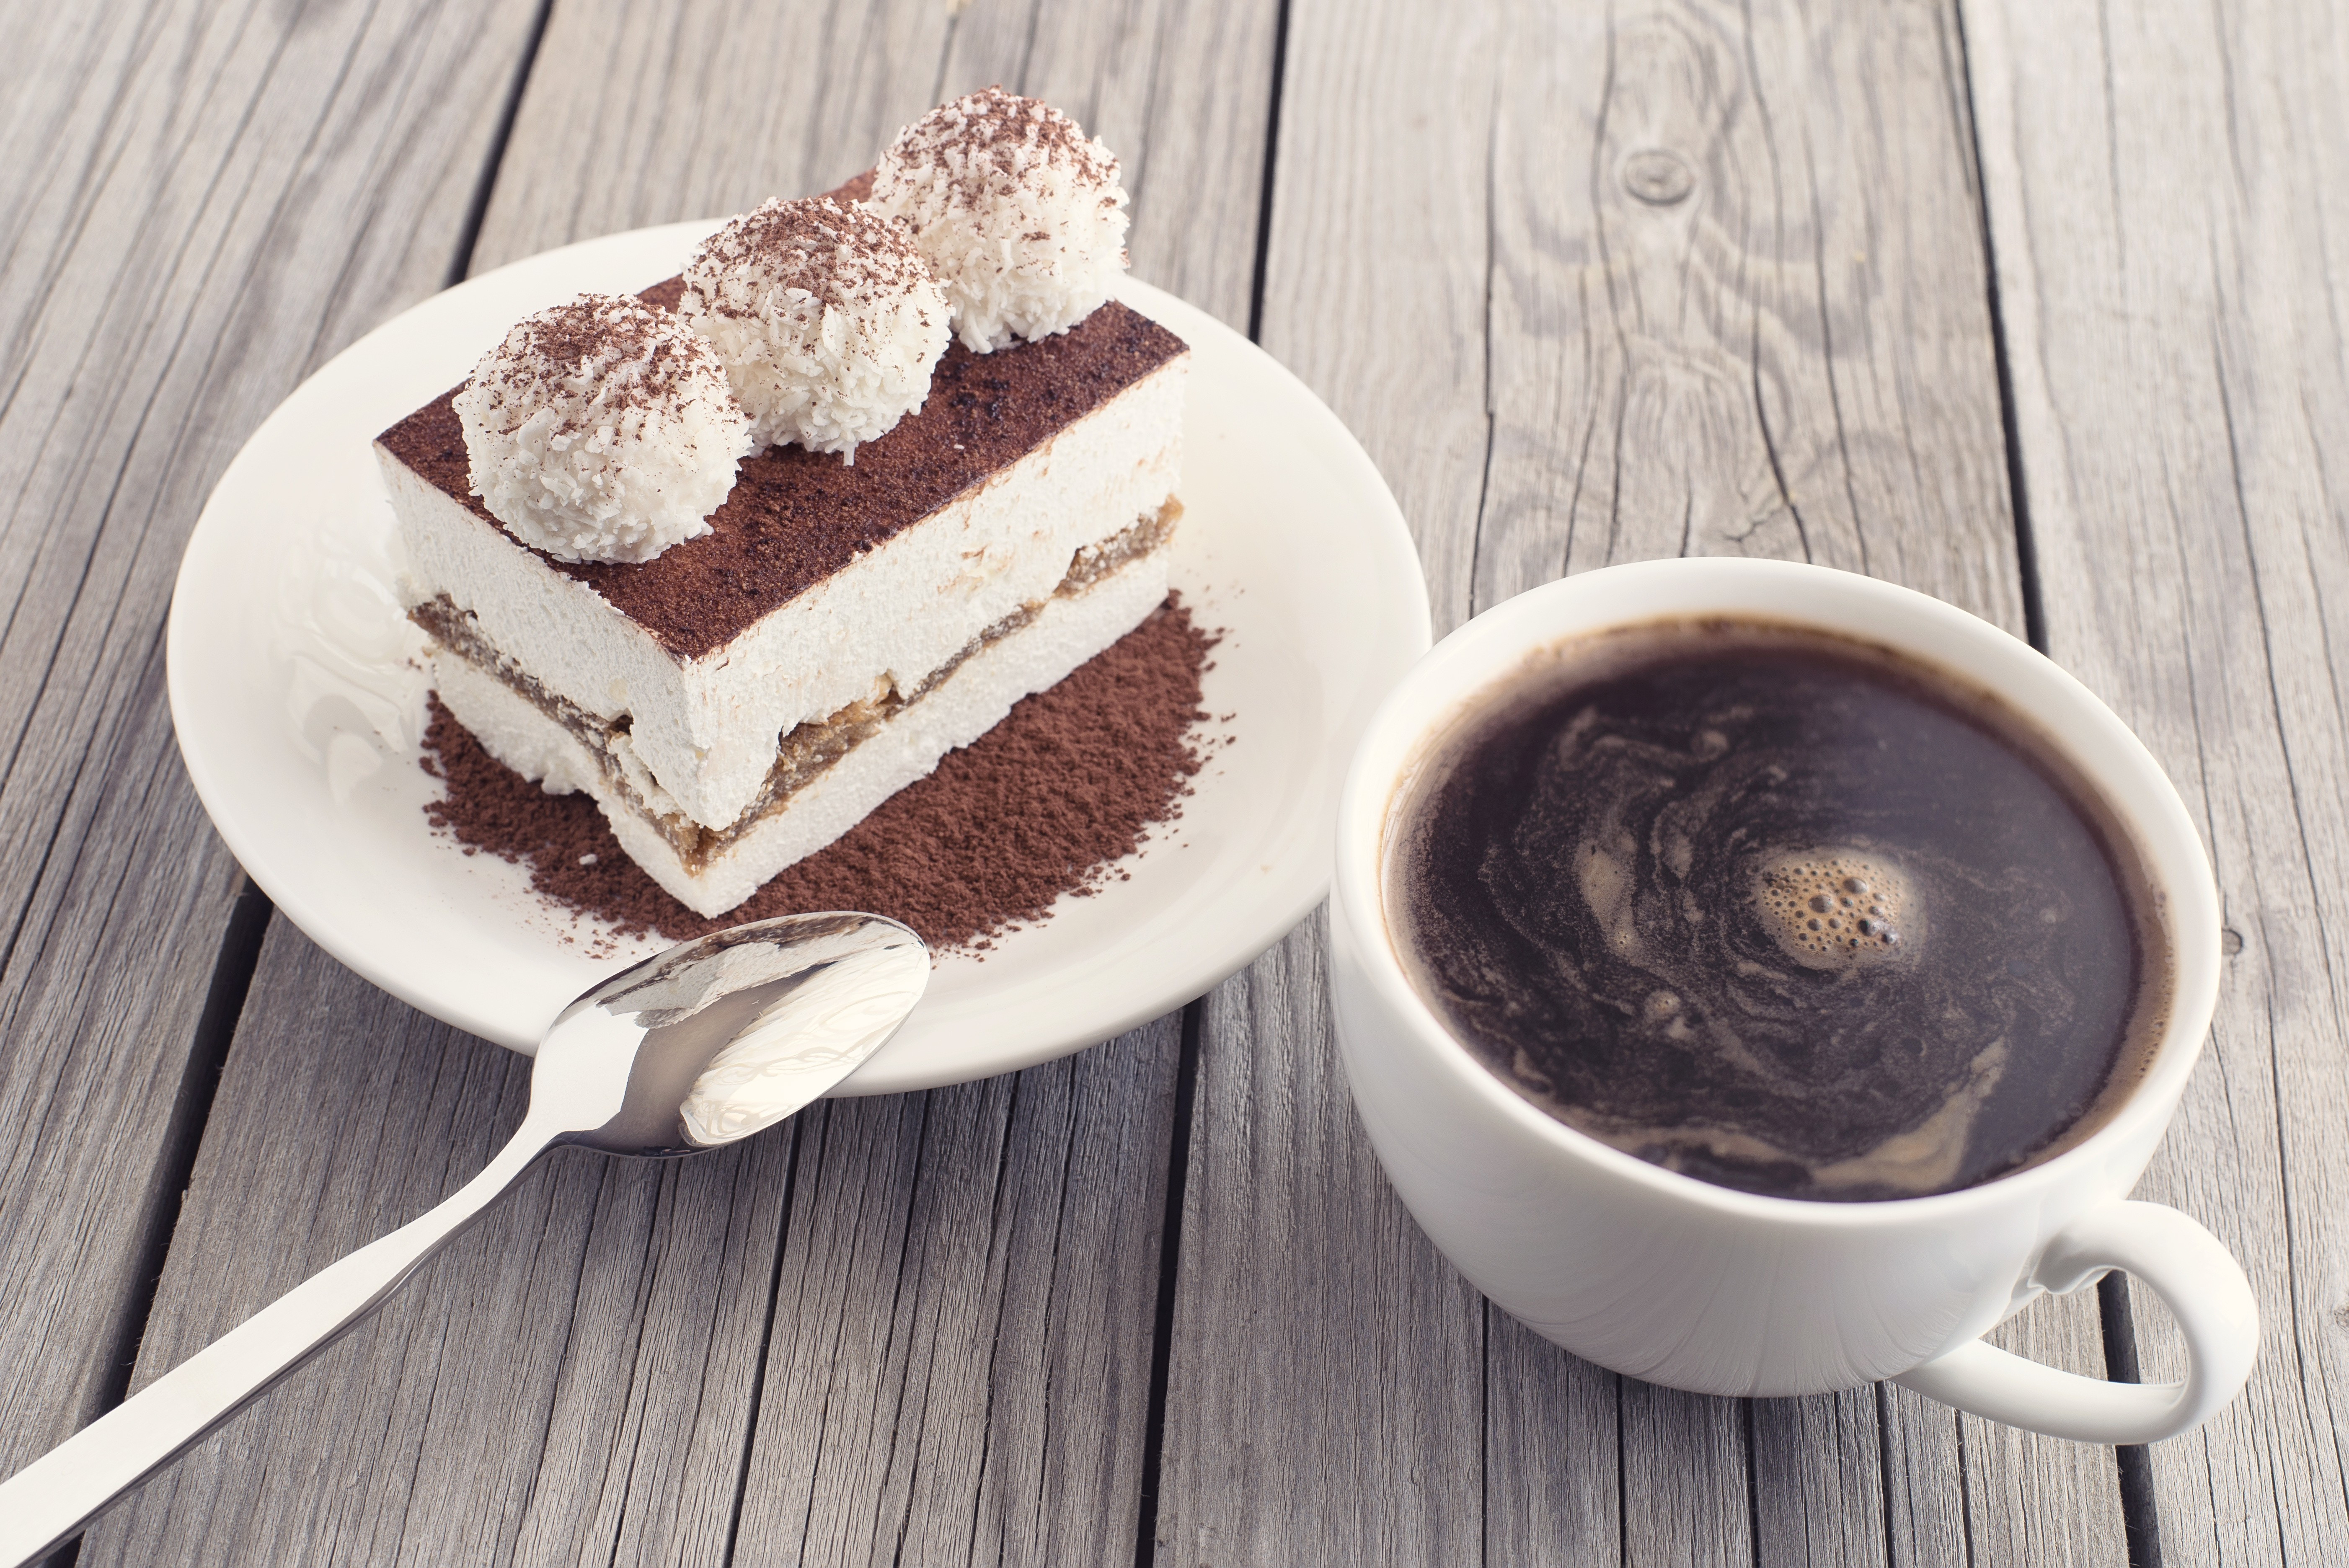 Coffee And Cake  Coffee and cake as a morning meal Tasty food background